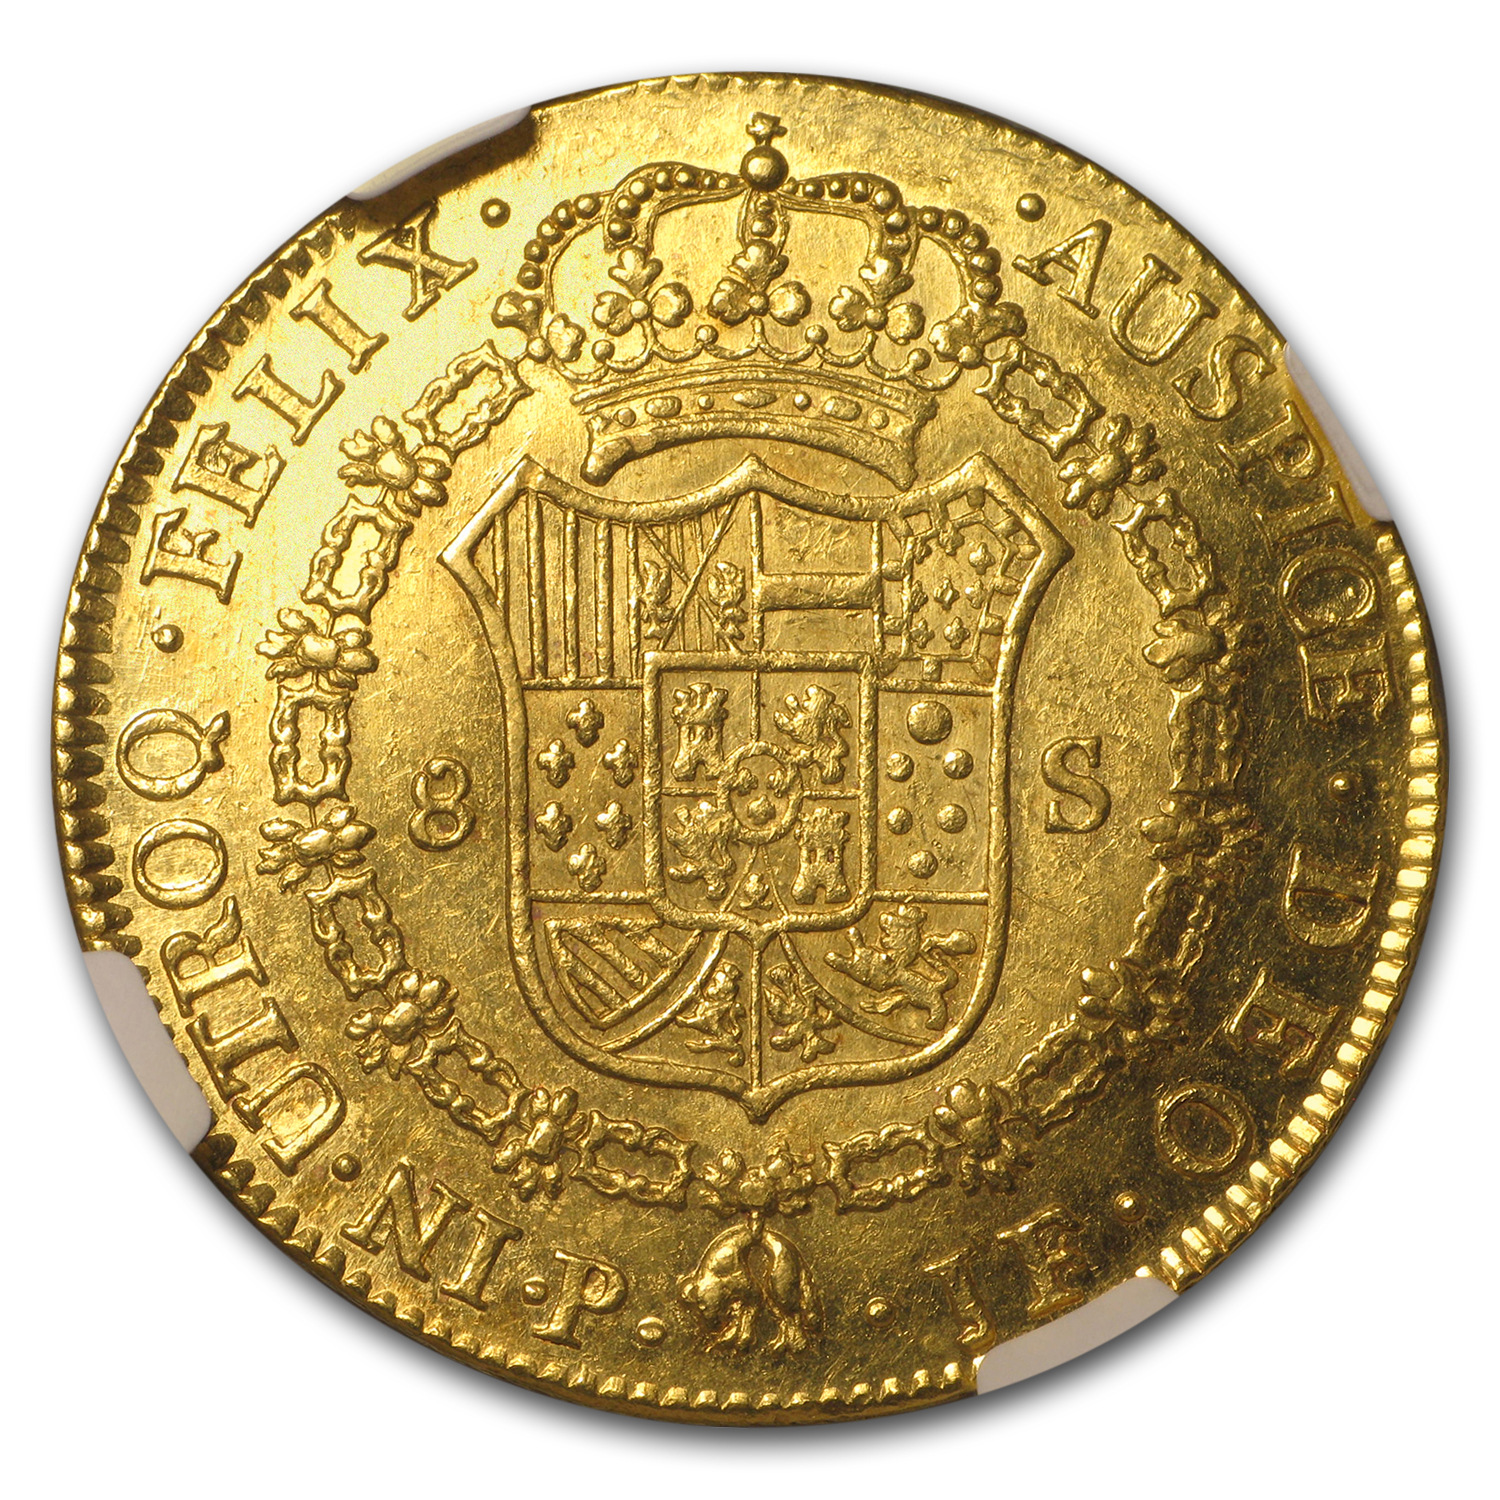 1795-P JF Colombia Gold 8 Escudos Charles IV MS-61 NGC